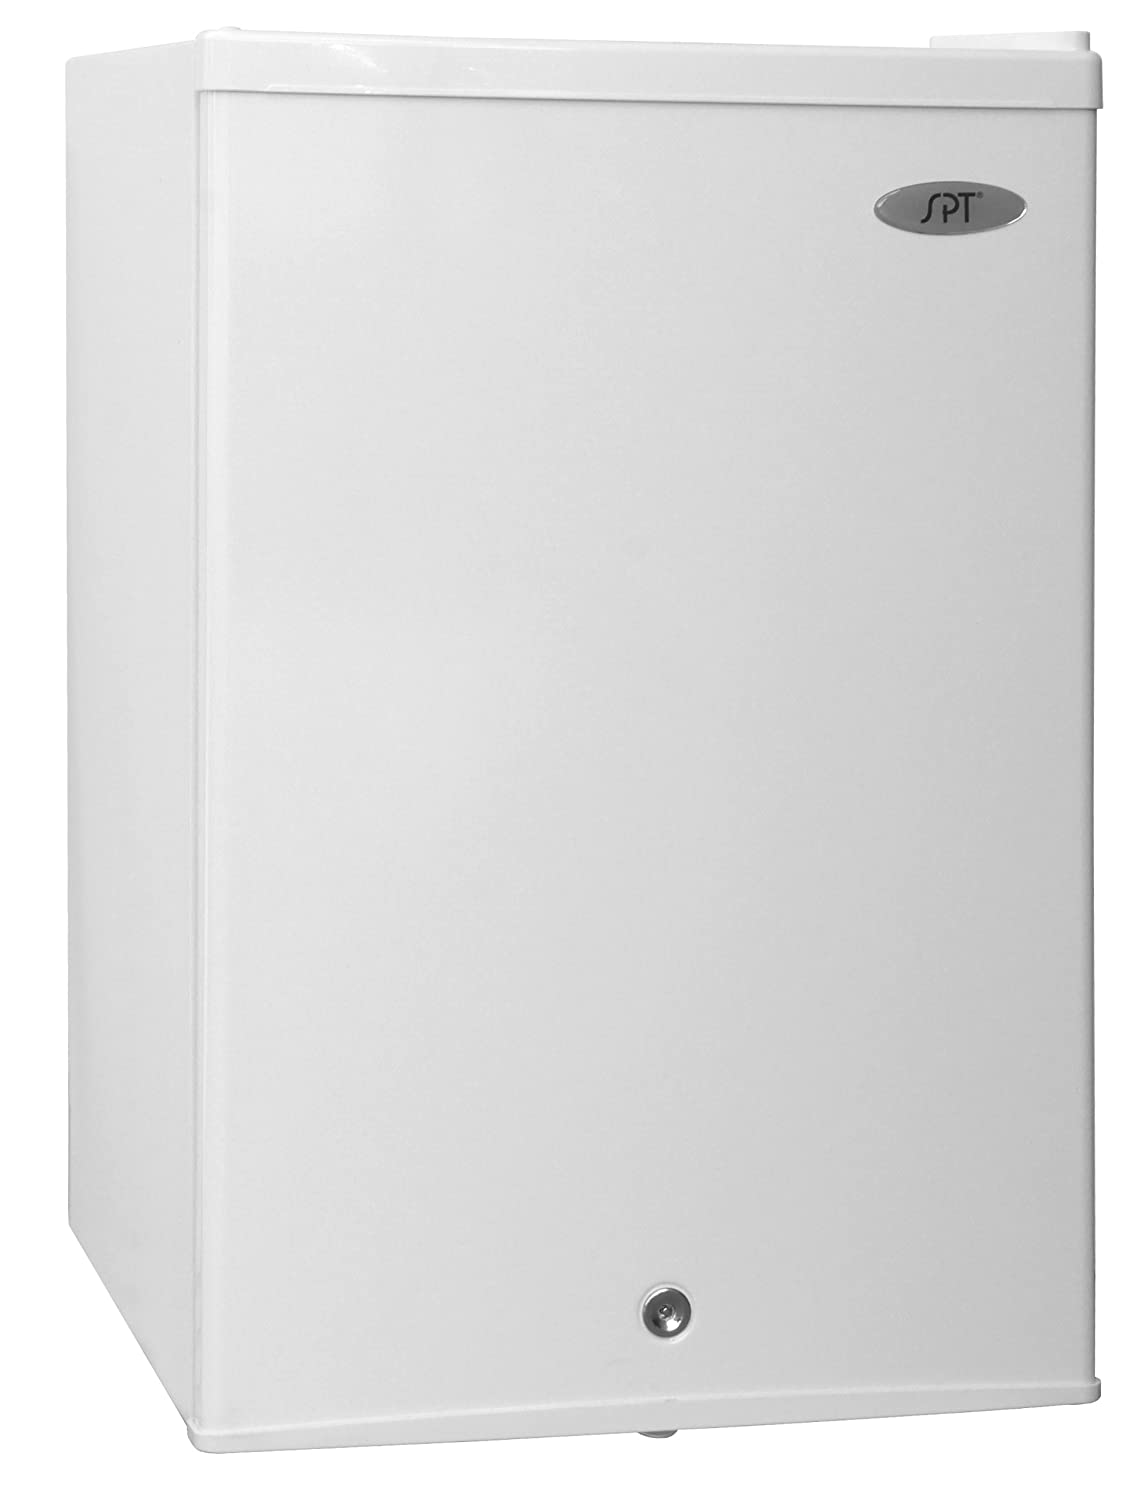 Amazon.com: SPT UF-214W Upright Freezer, 2.1 Cubic Feet, Energy Star ...